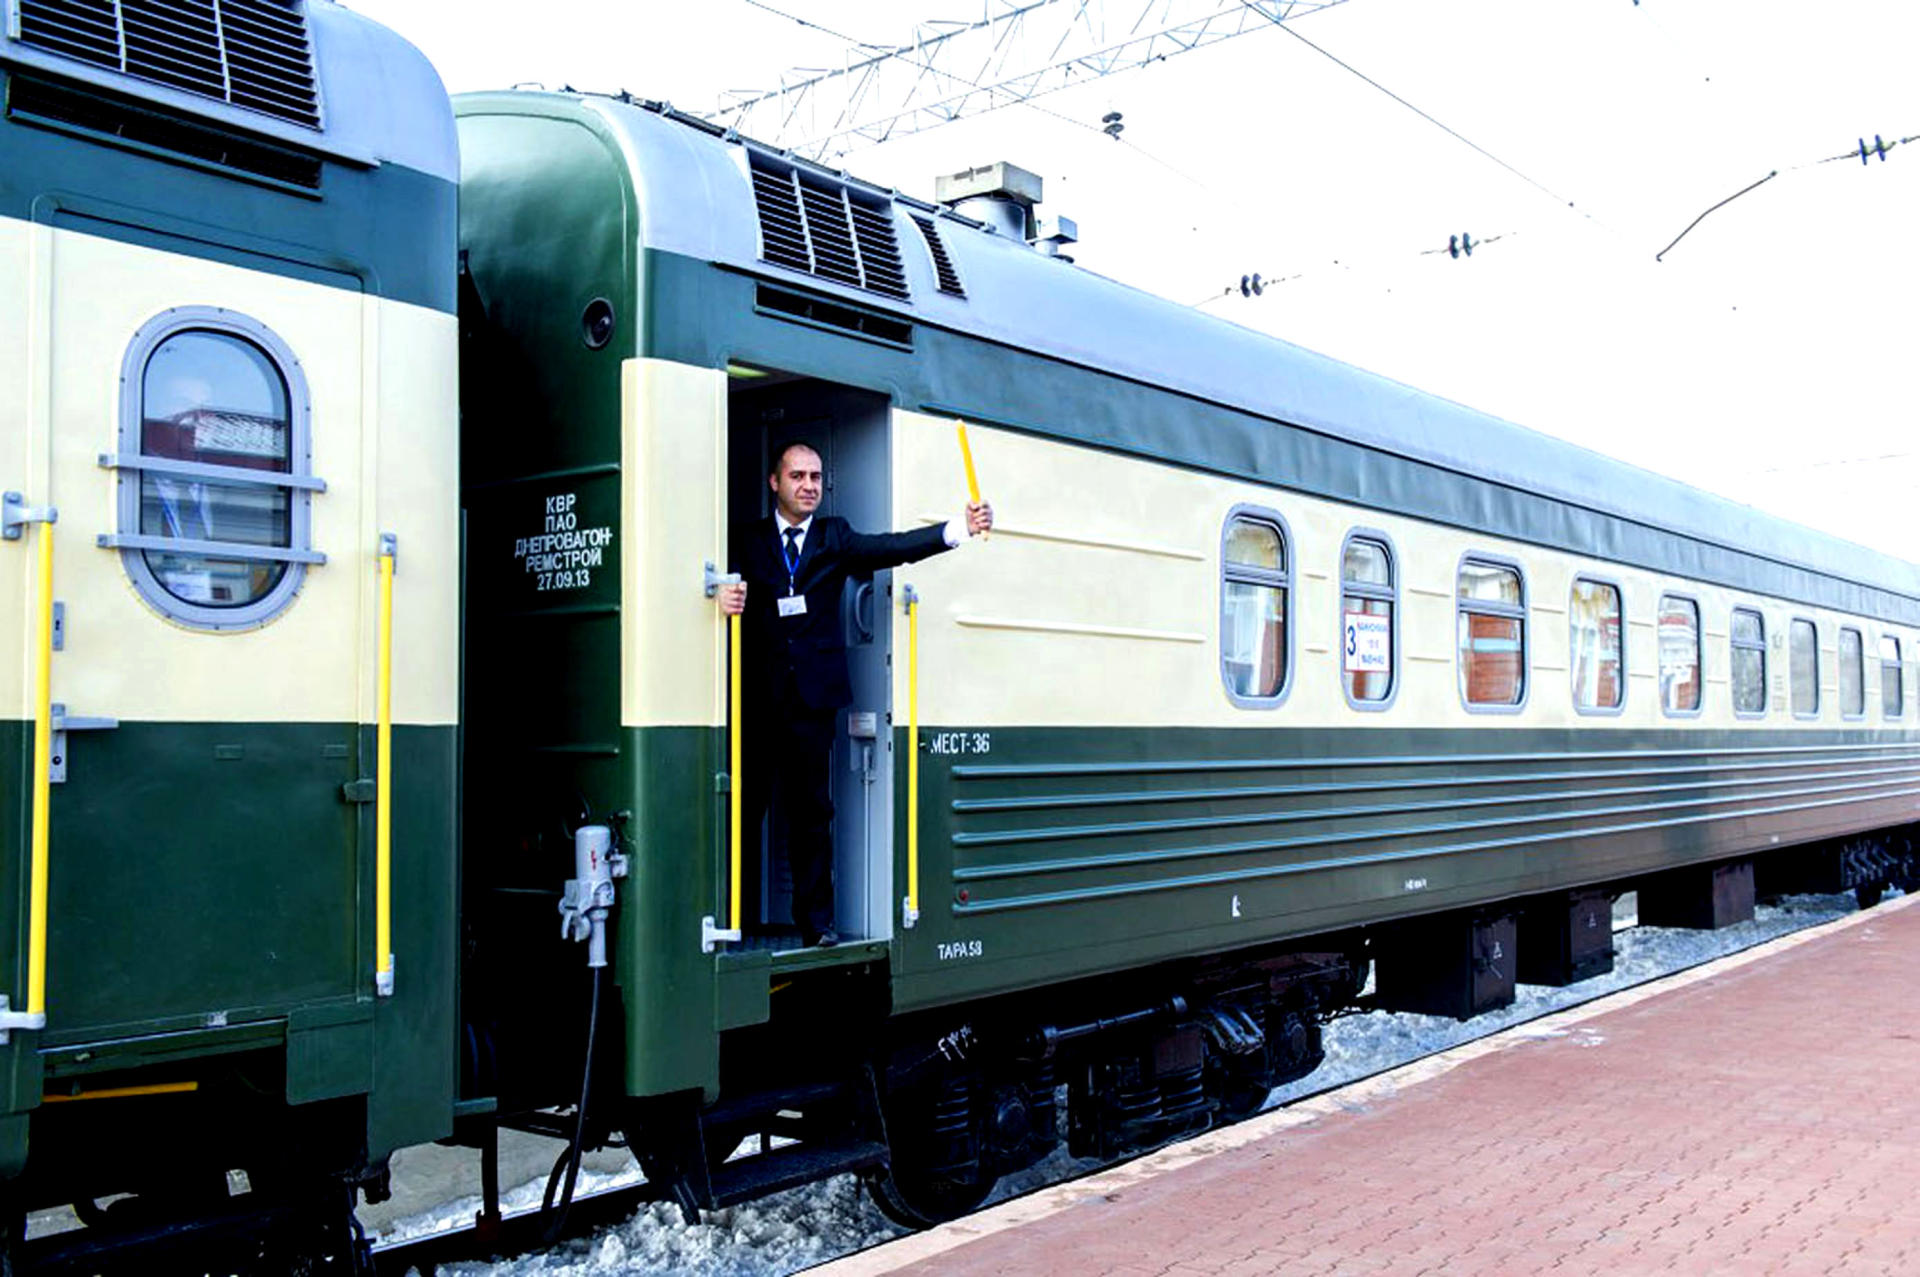 Schedule of Nakhchivan (Azerbaijan)-Mashhad (Iran) train to change